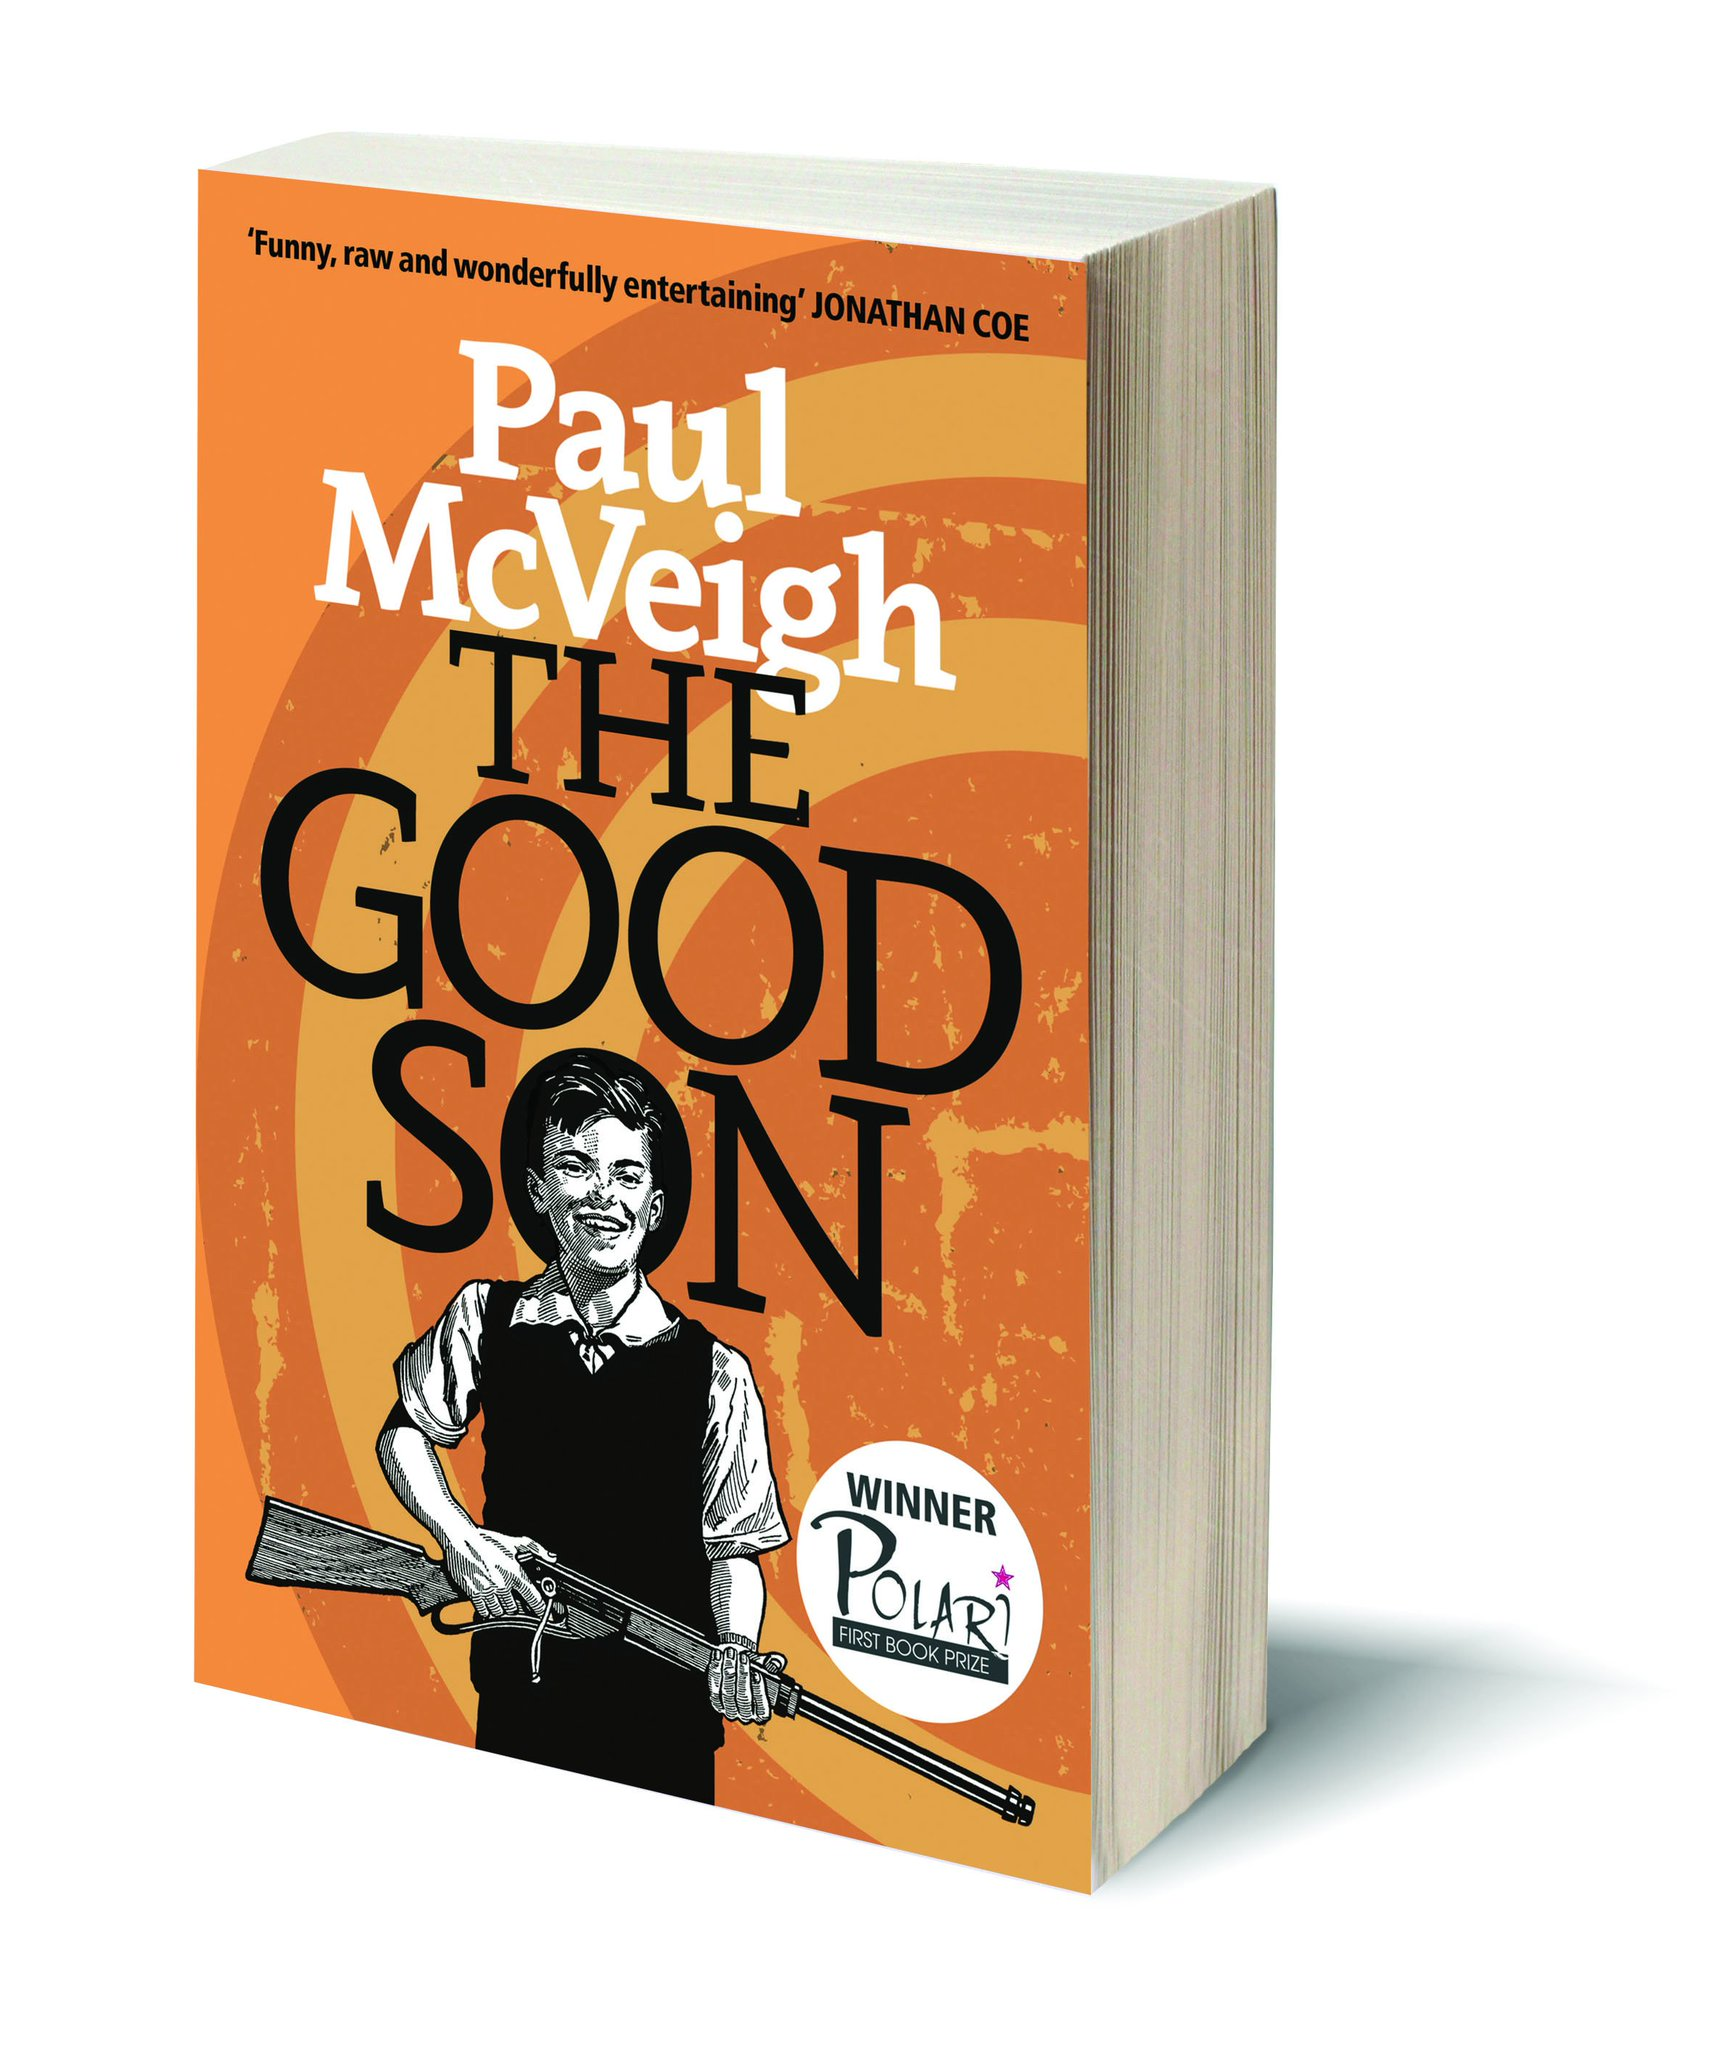 Are you giving out @paul_mc_veigh's The Good Son at your organisation on #WorldBookNight? We'd love to see your pics https://t.co/QUxKQS2PHw